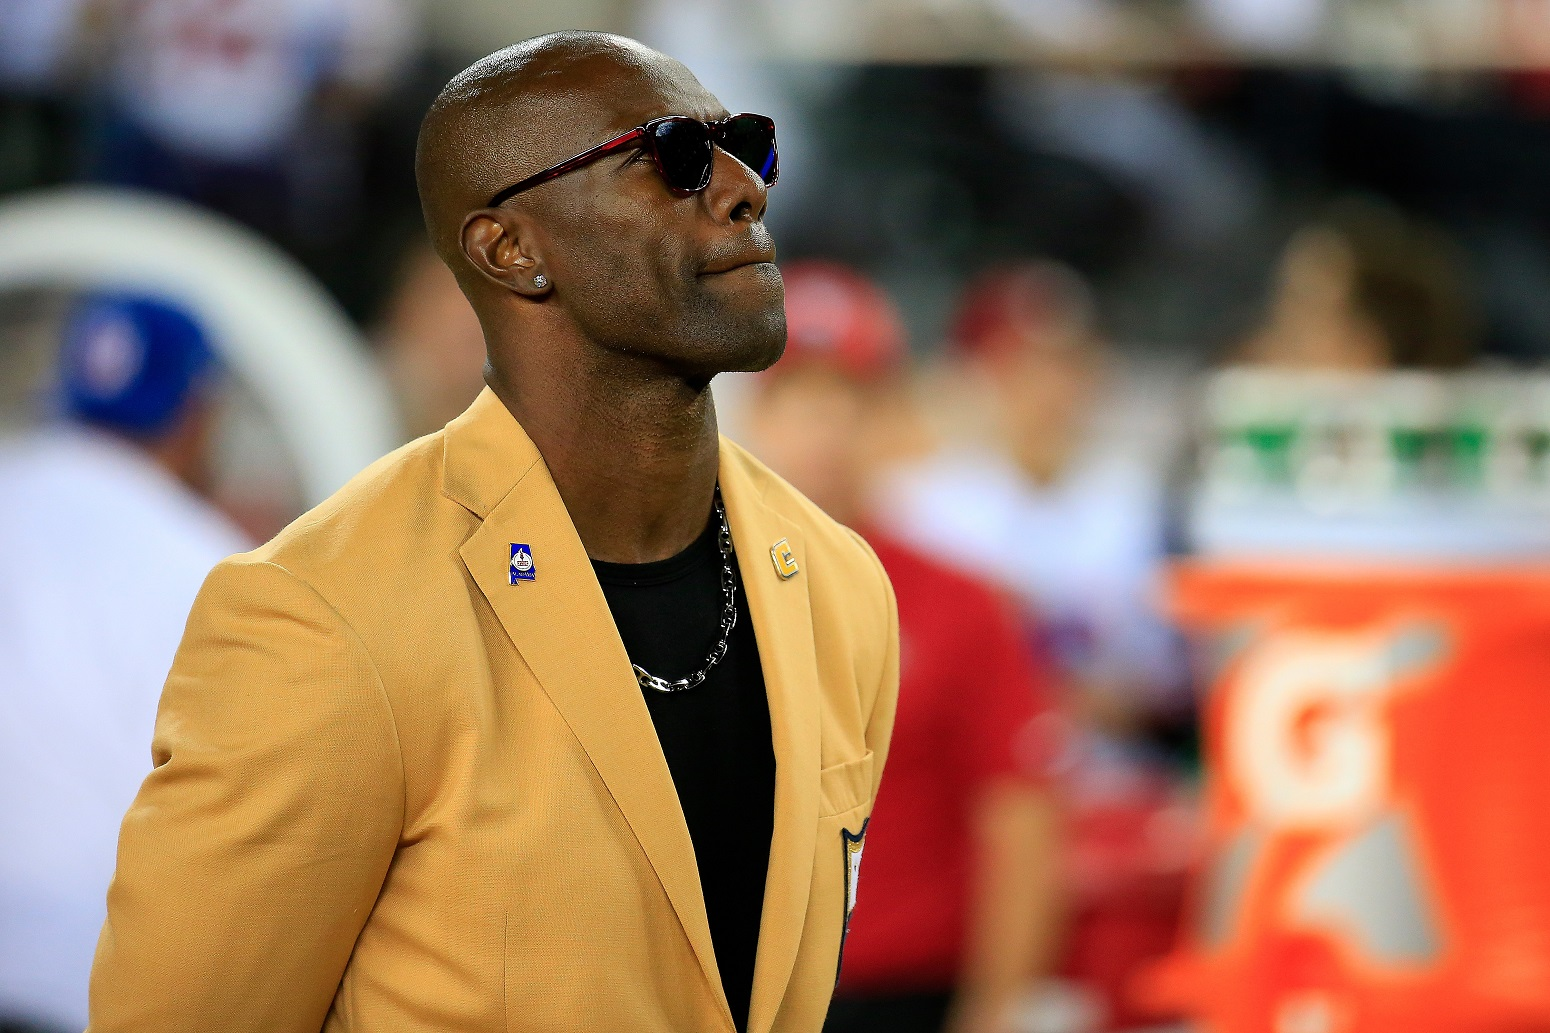 Hall of Fame wide receiver Terrell Owens